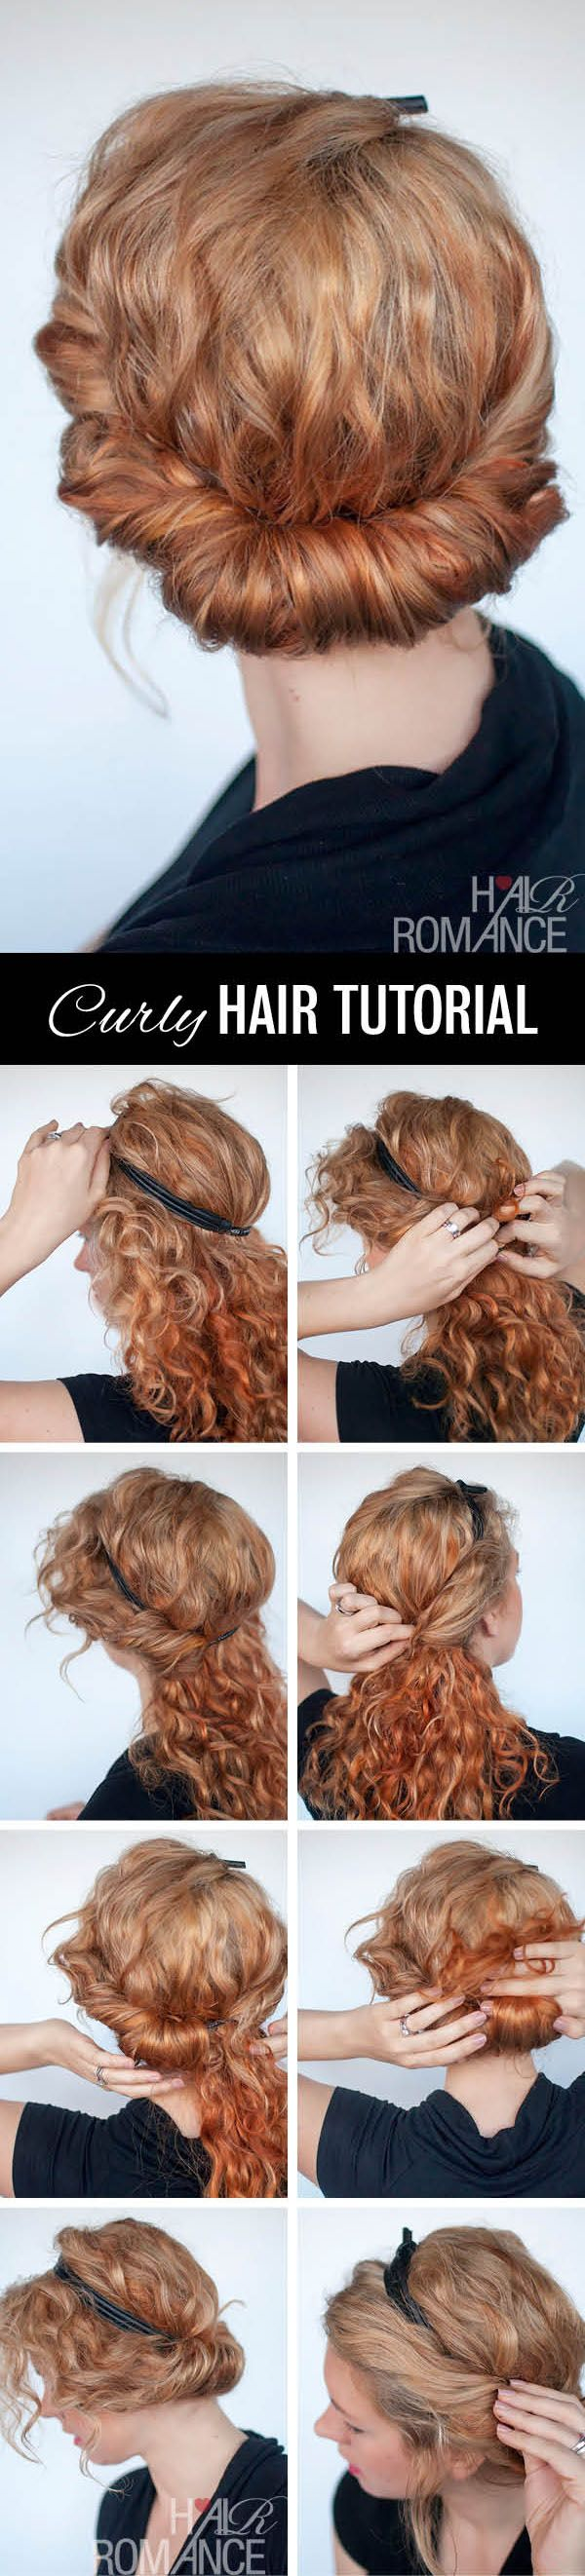 Curly Hairstyle Tutorial Rolled Headband Updo Hair Romance Hair Romance Curly Hair Styles Naturally Curly Hair Tutorial